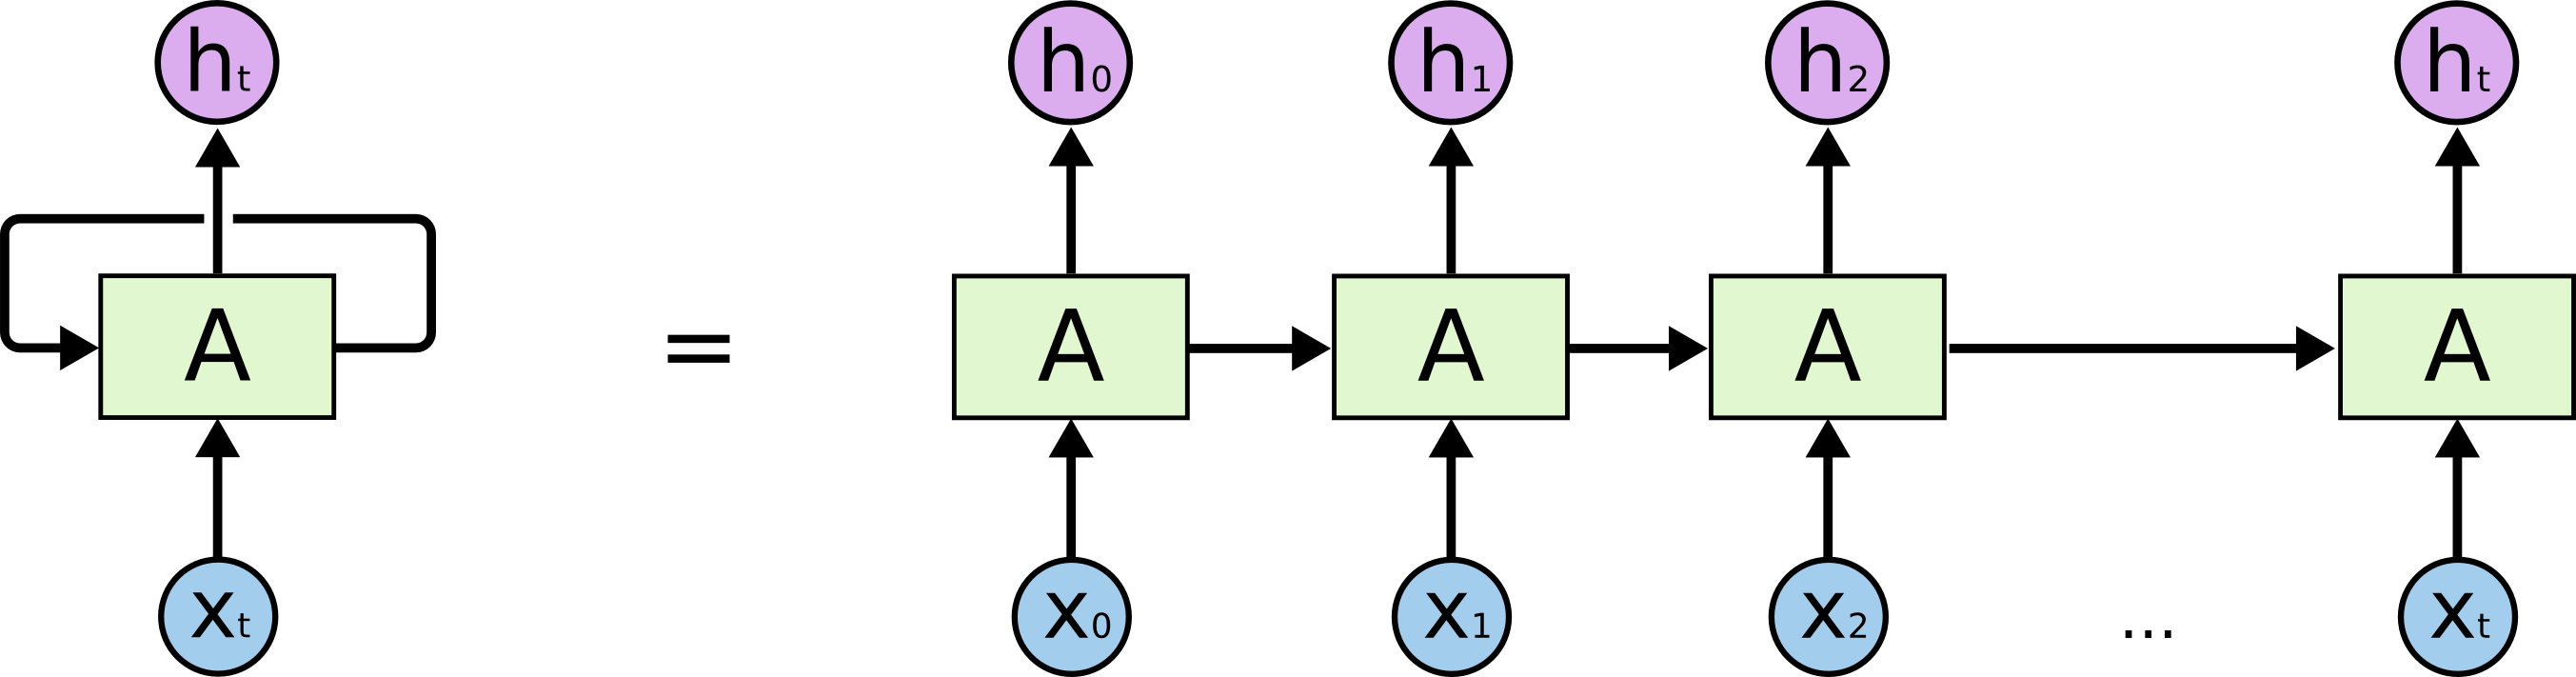 lstm_architecture.png